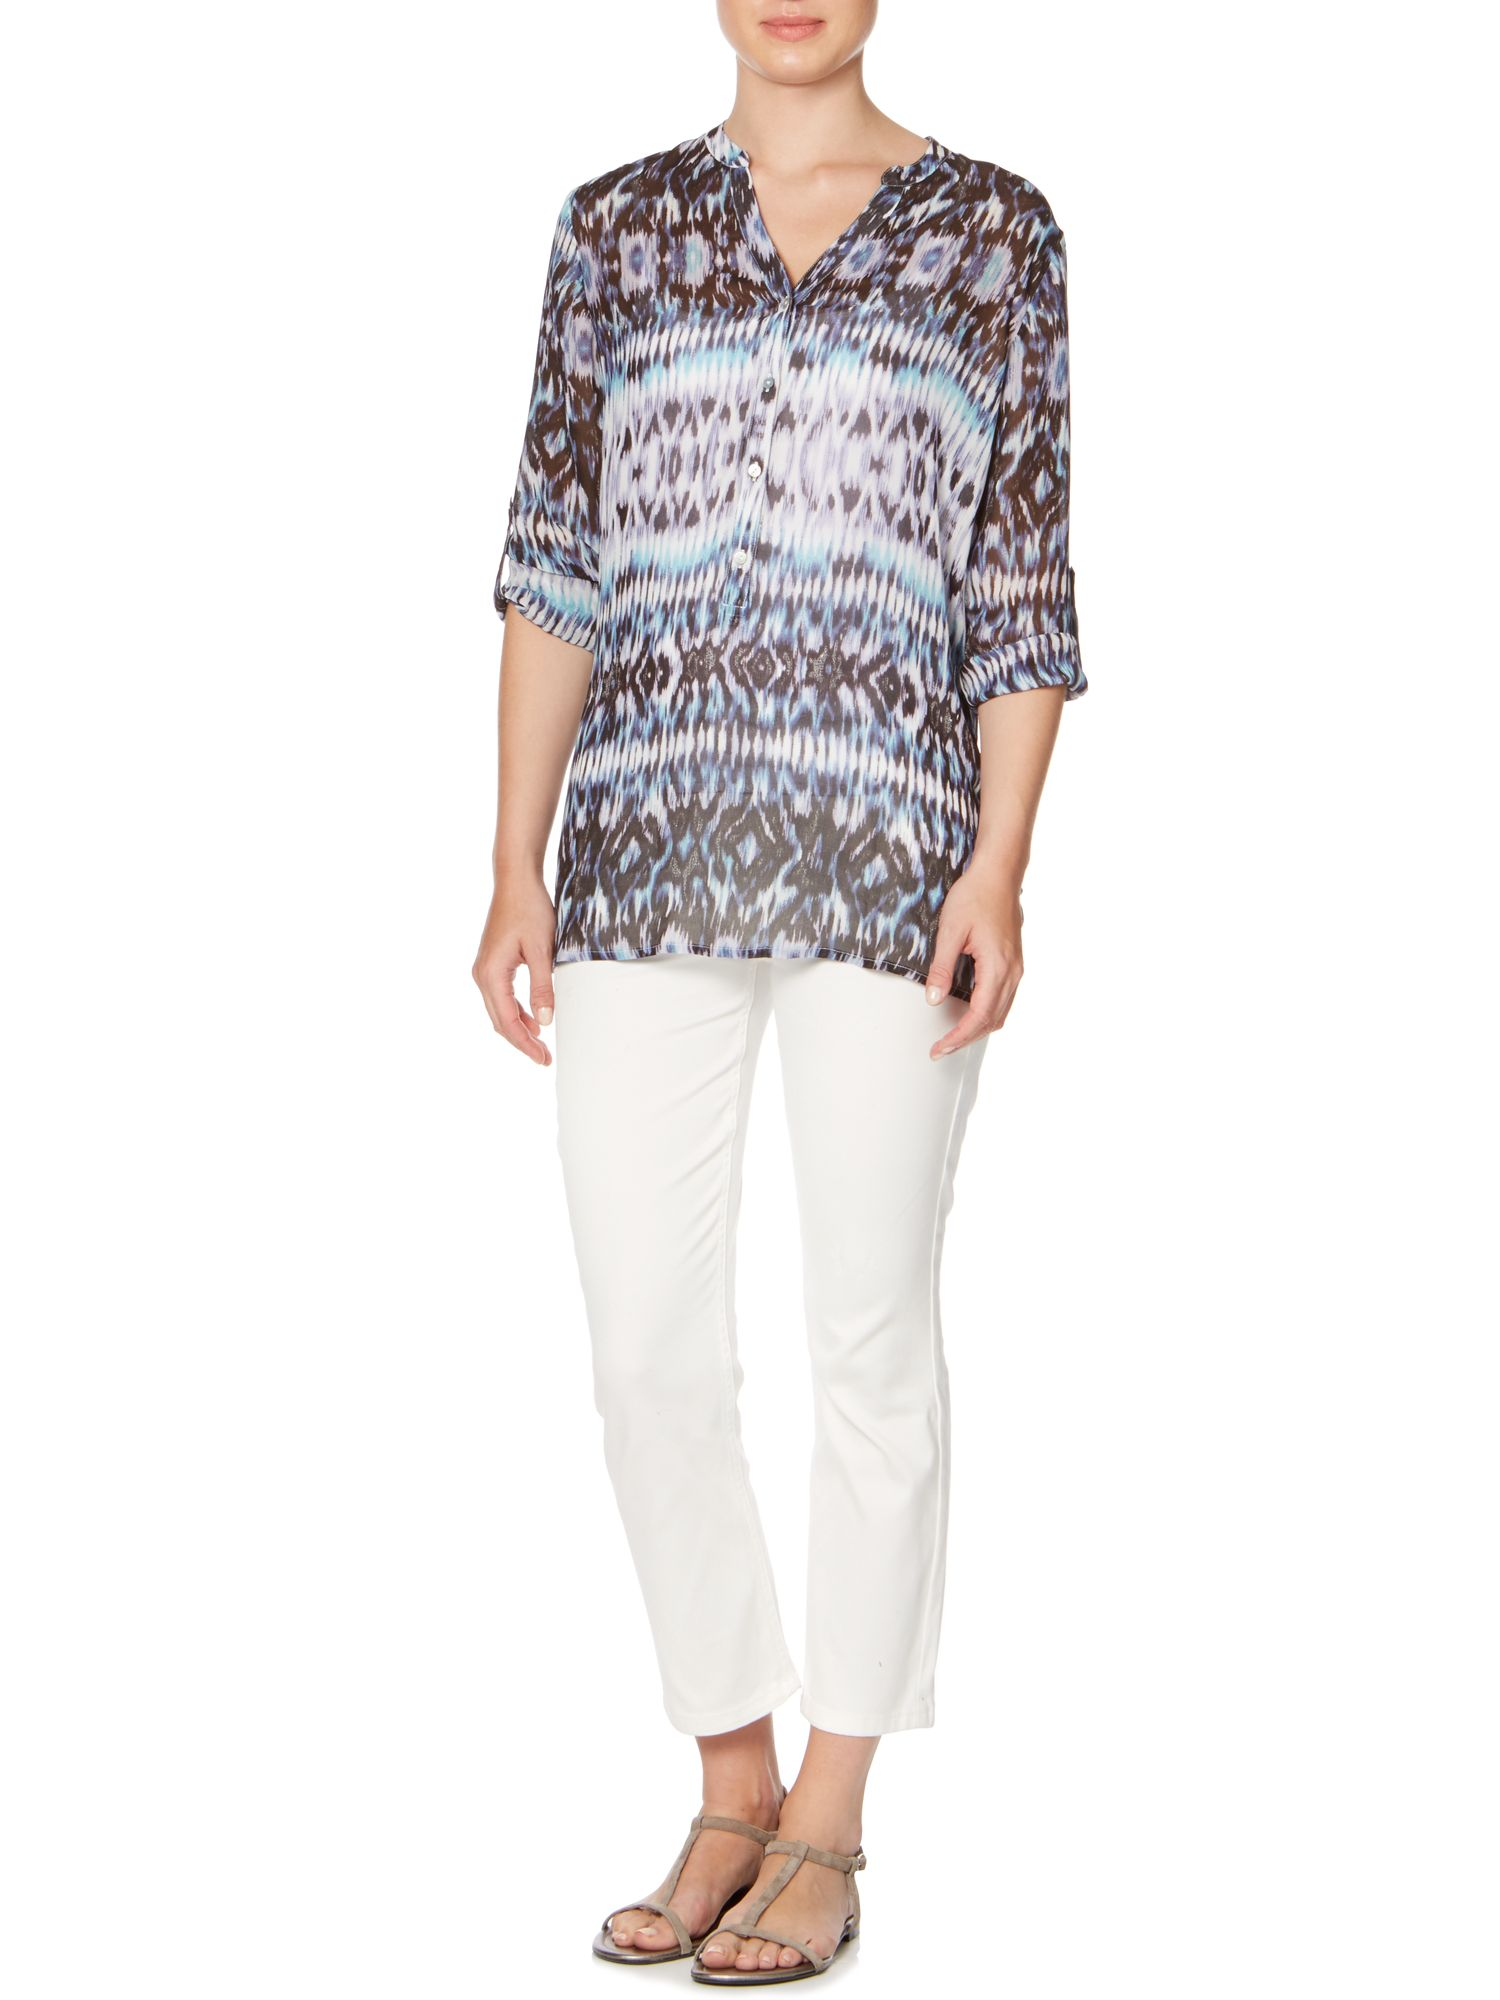 Aztec printed woven blouse